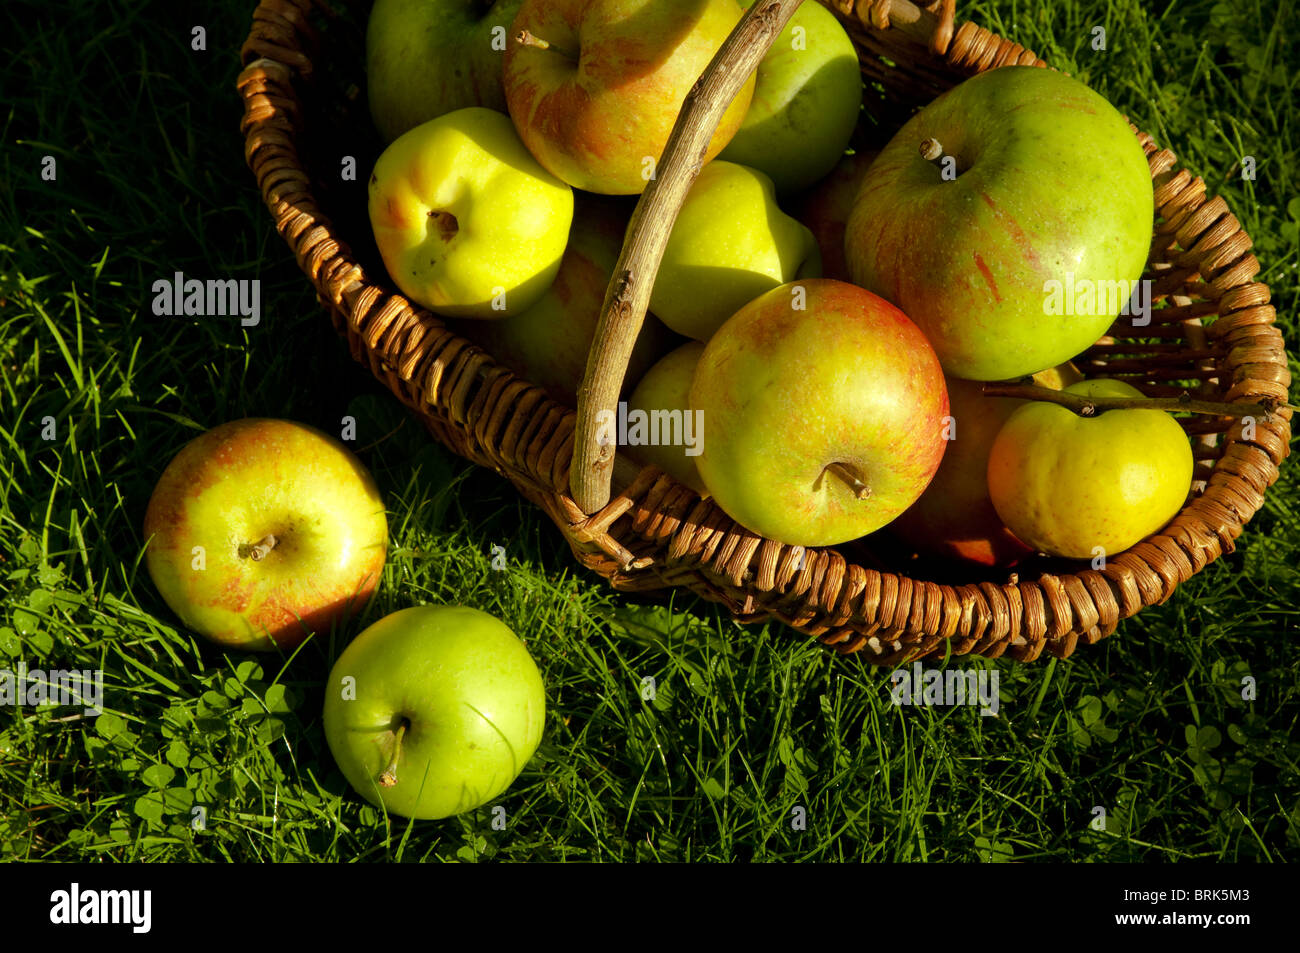 Autumn fruits in a basket bathed in autumn sunshine - Bramley apples, Quince, Coxes Orange Pippins. UK Stock Photo